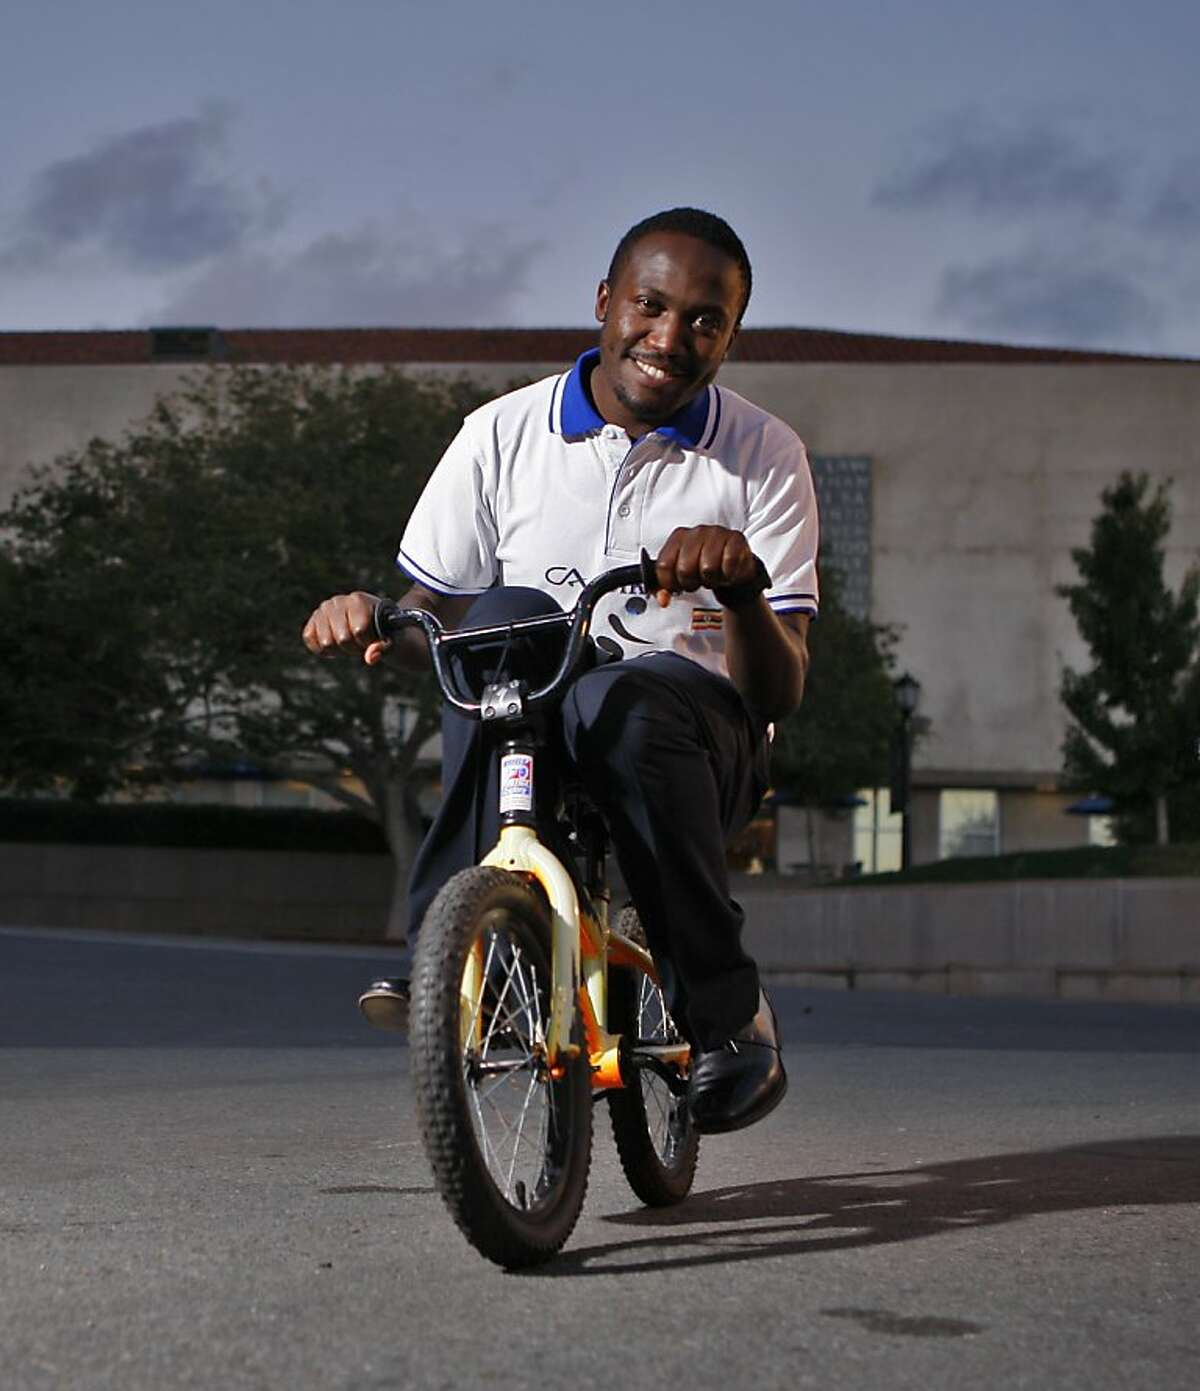 Chris Ategeka sits on a small bicycle for a portrait at U.C. Berkeley, Saturday, Sept. 21, 2013.